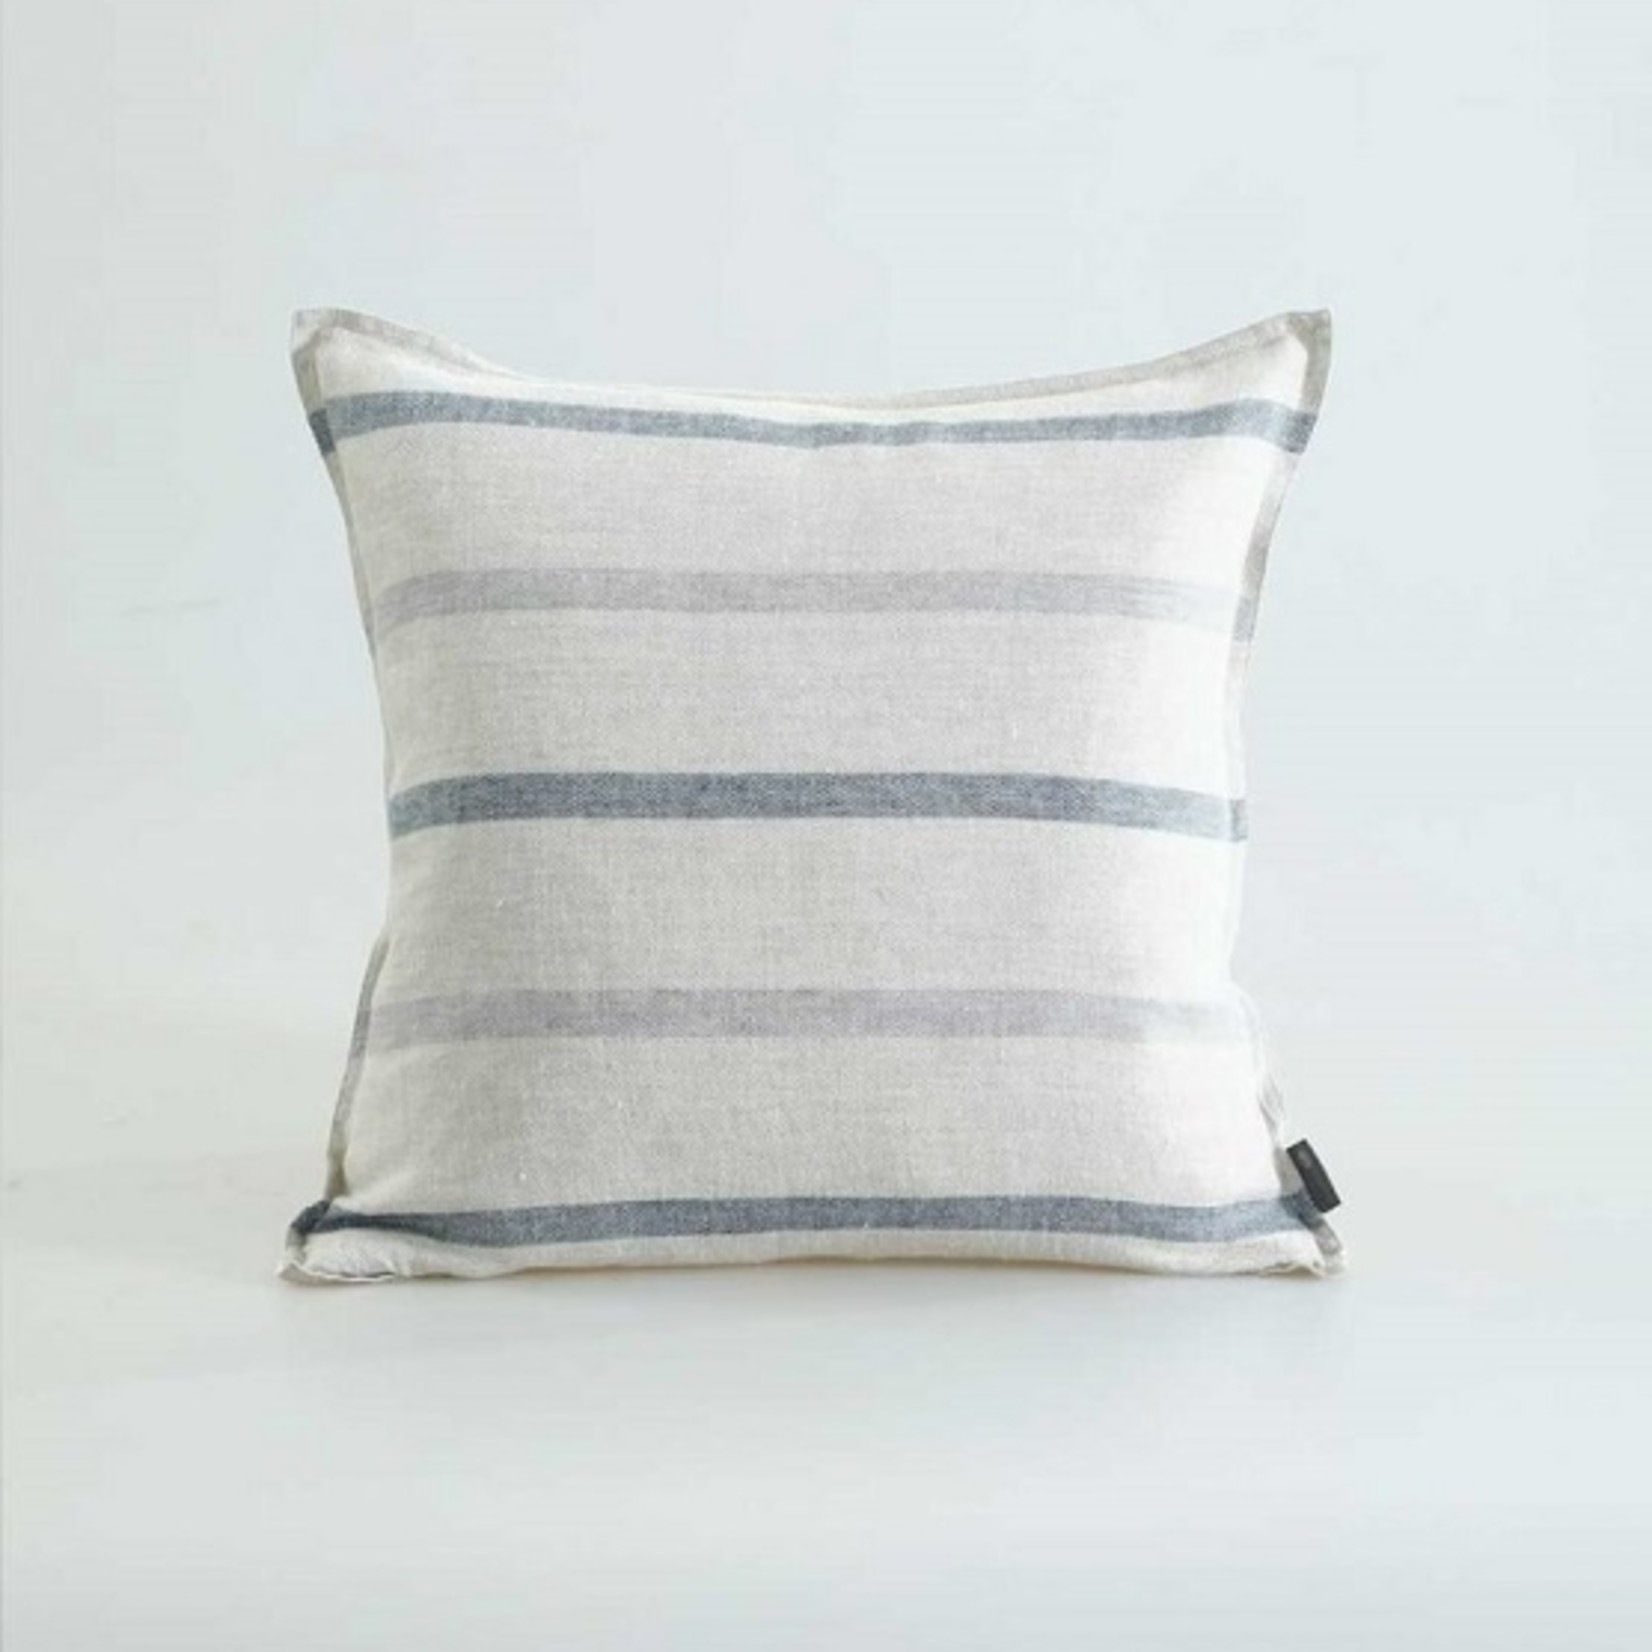 MM Linens WILLOW Linen Cushion